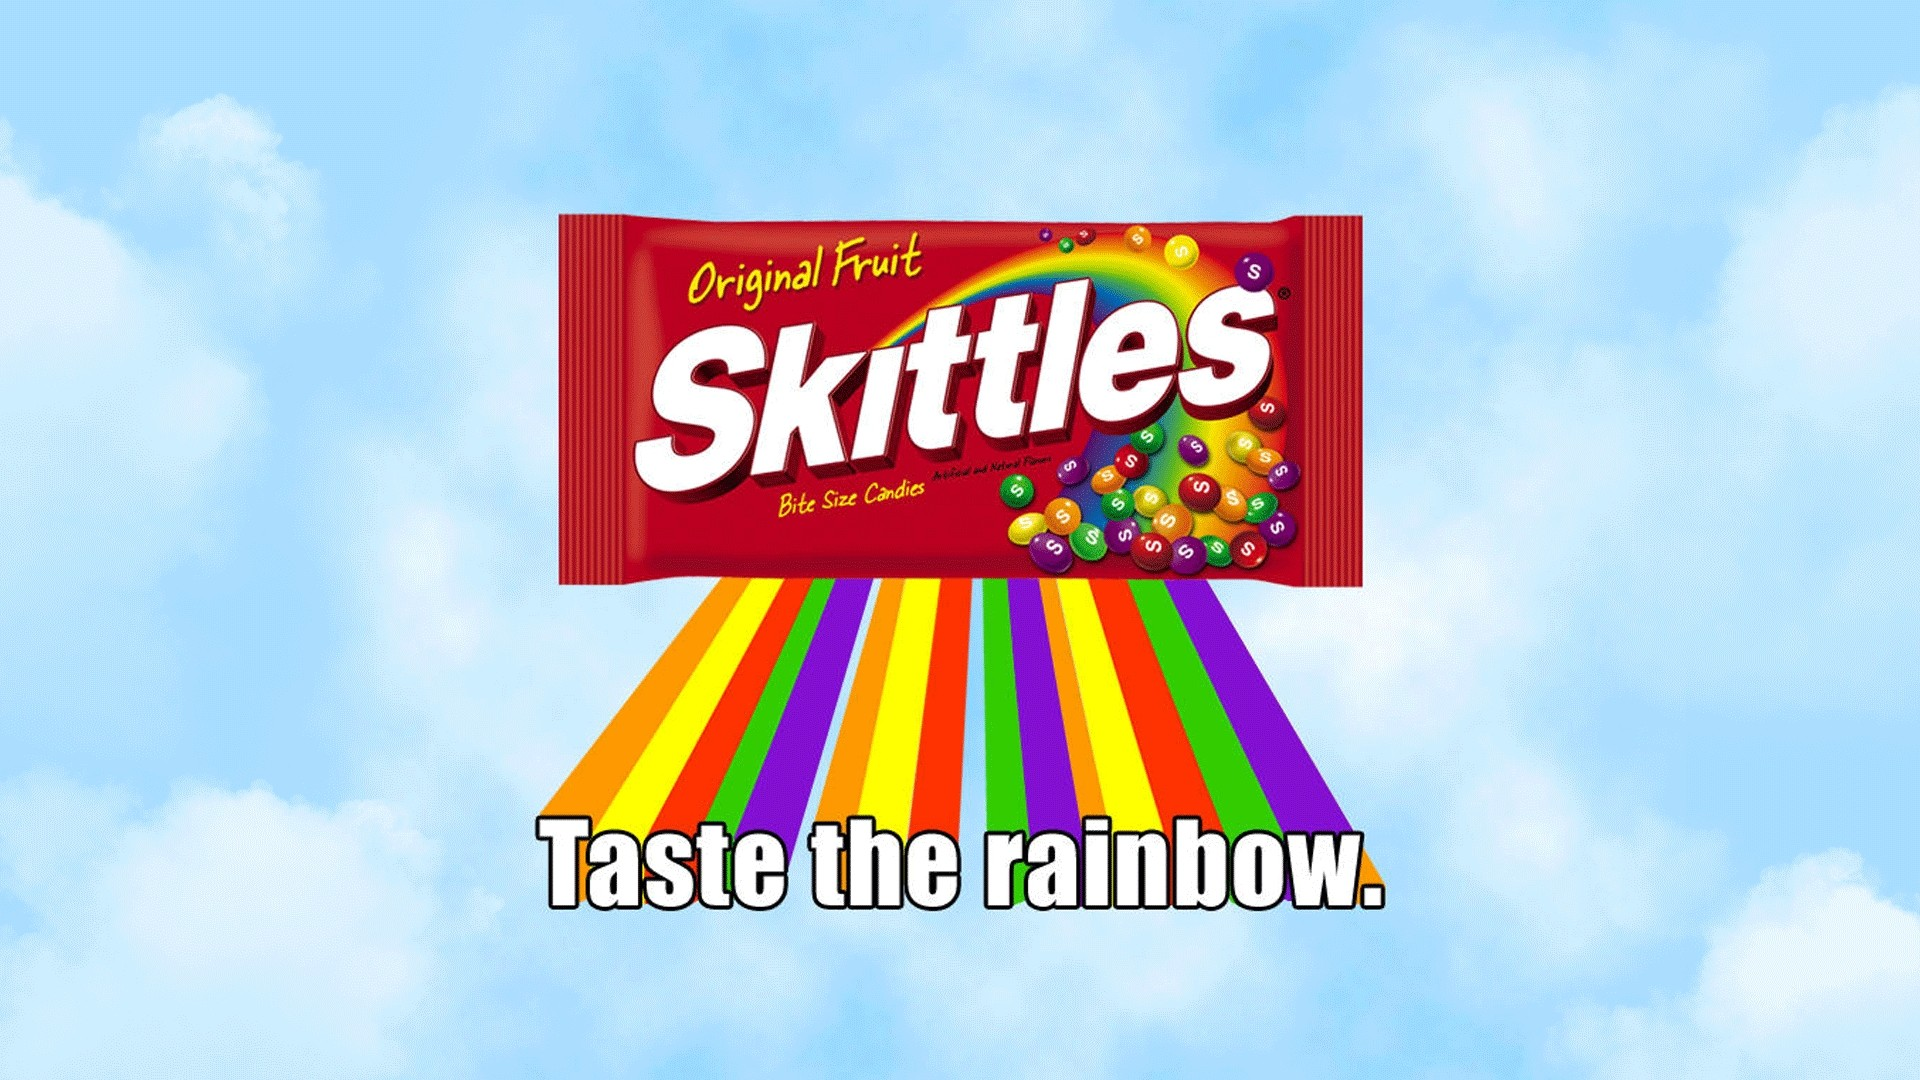 Skittles Download Free Wallpaper Image Search